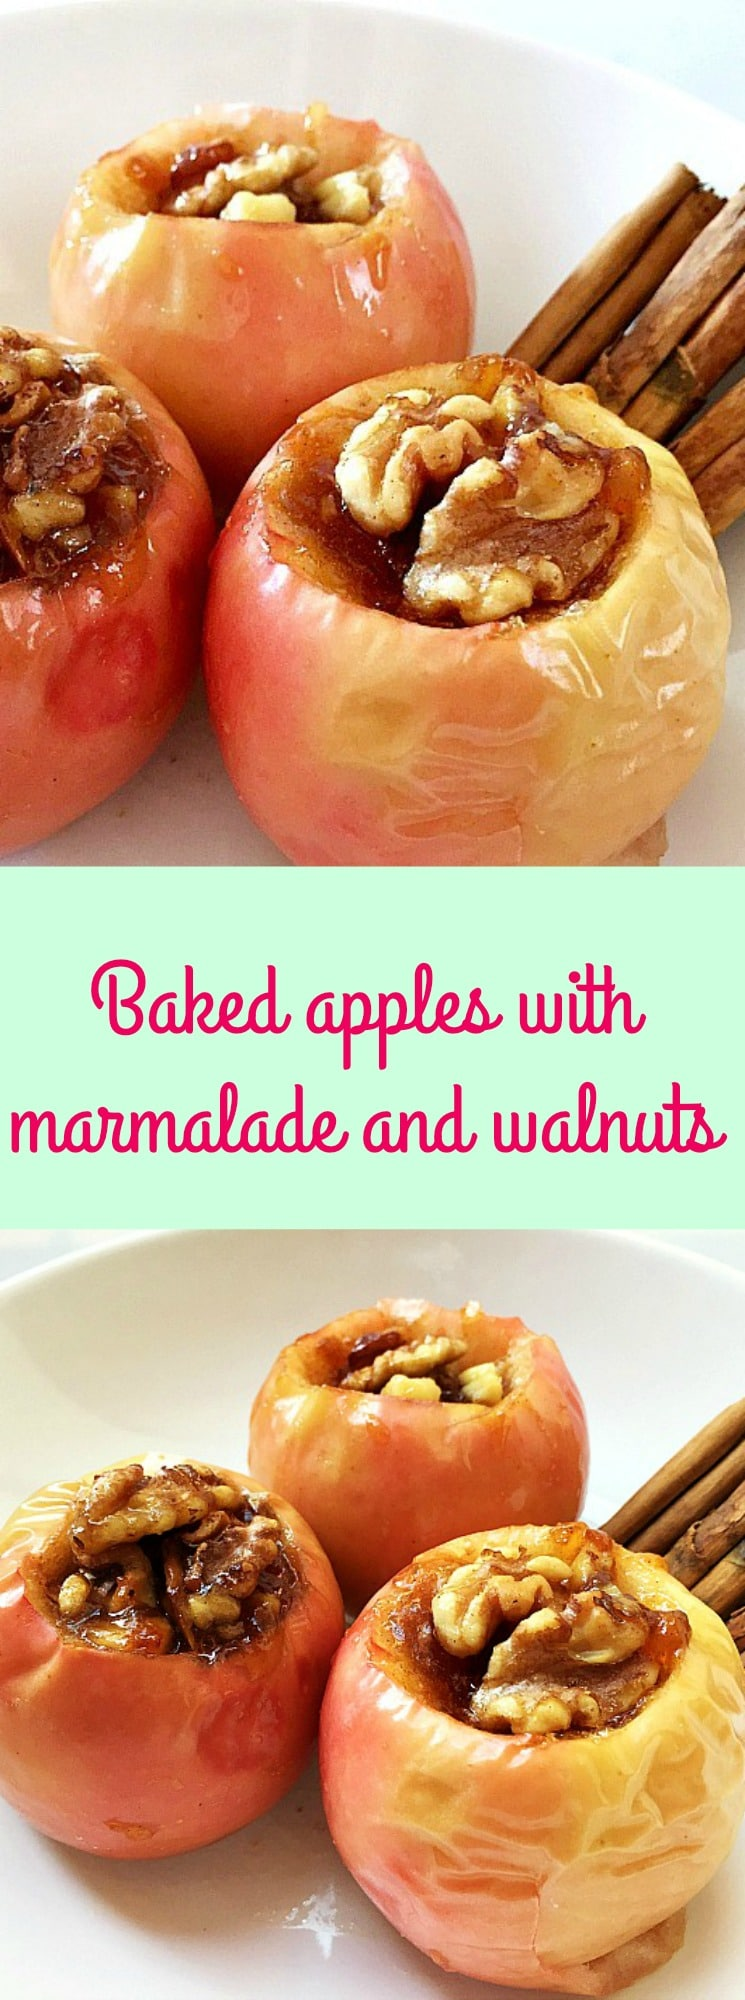 Baked apples with marmalade and walnuts